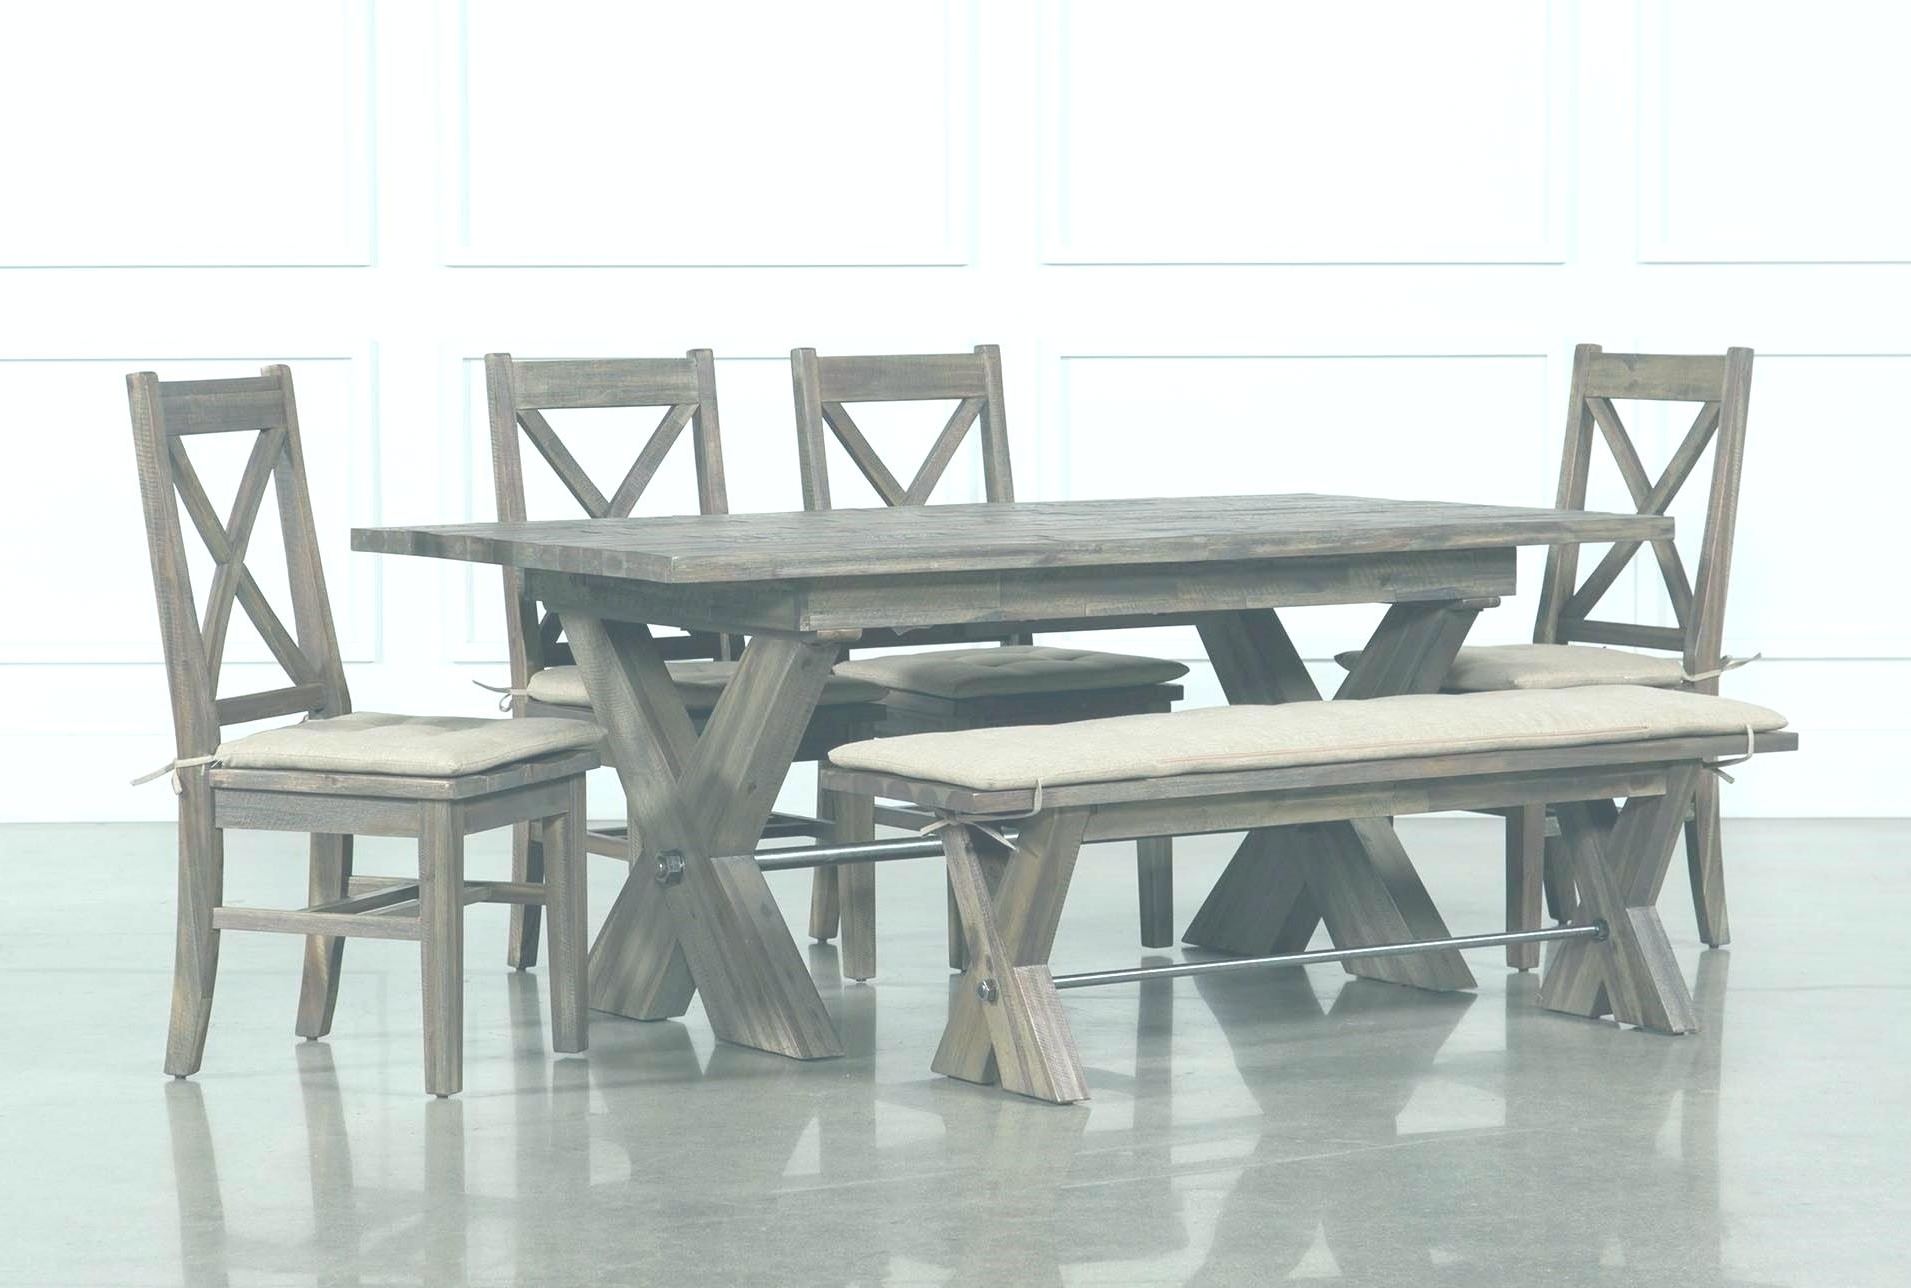 Likeable Living Spaces Dining Room Tables Of S # (View 8 of 25)